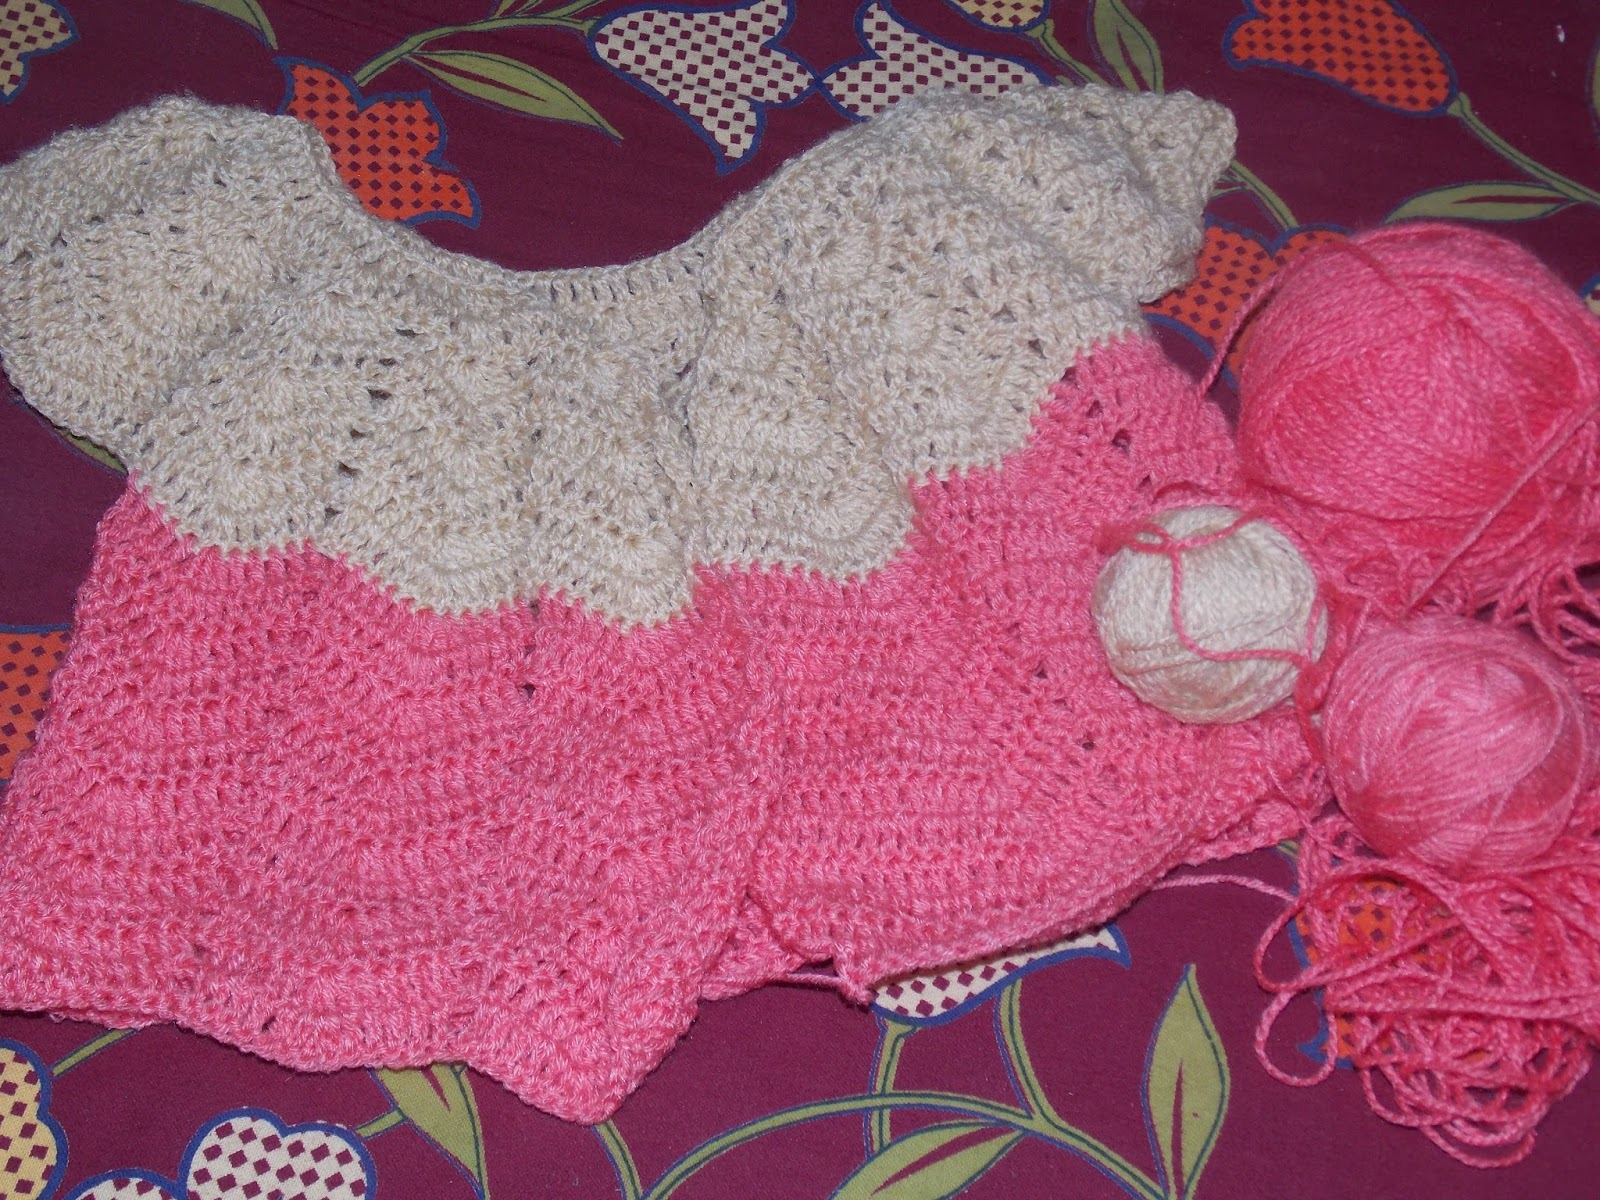 Crochet Work : crochet sweater i m making now the sospesso work i